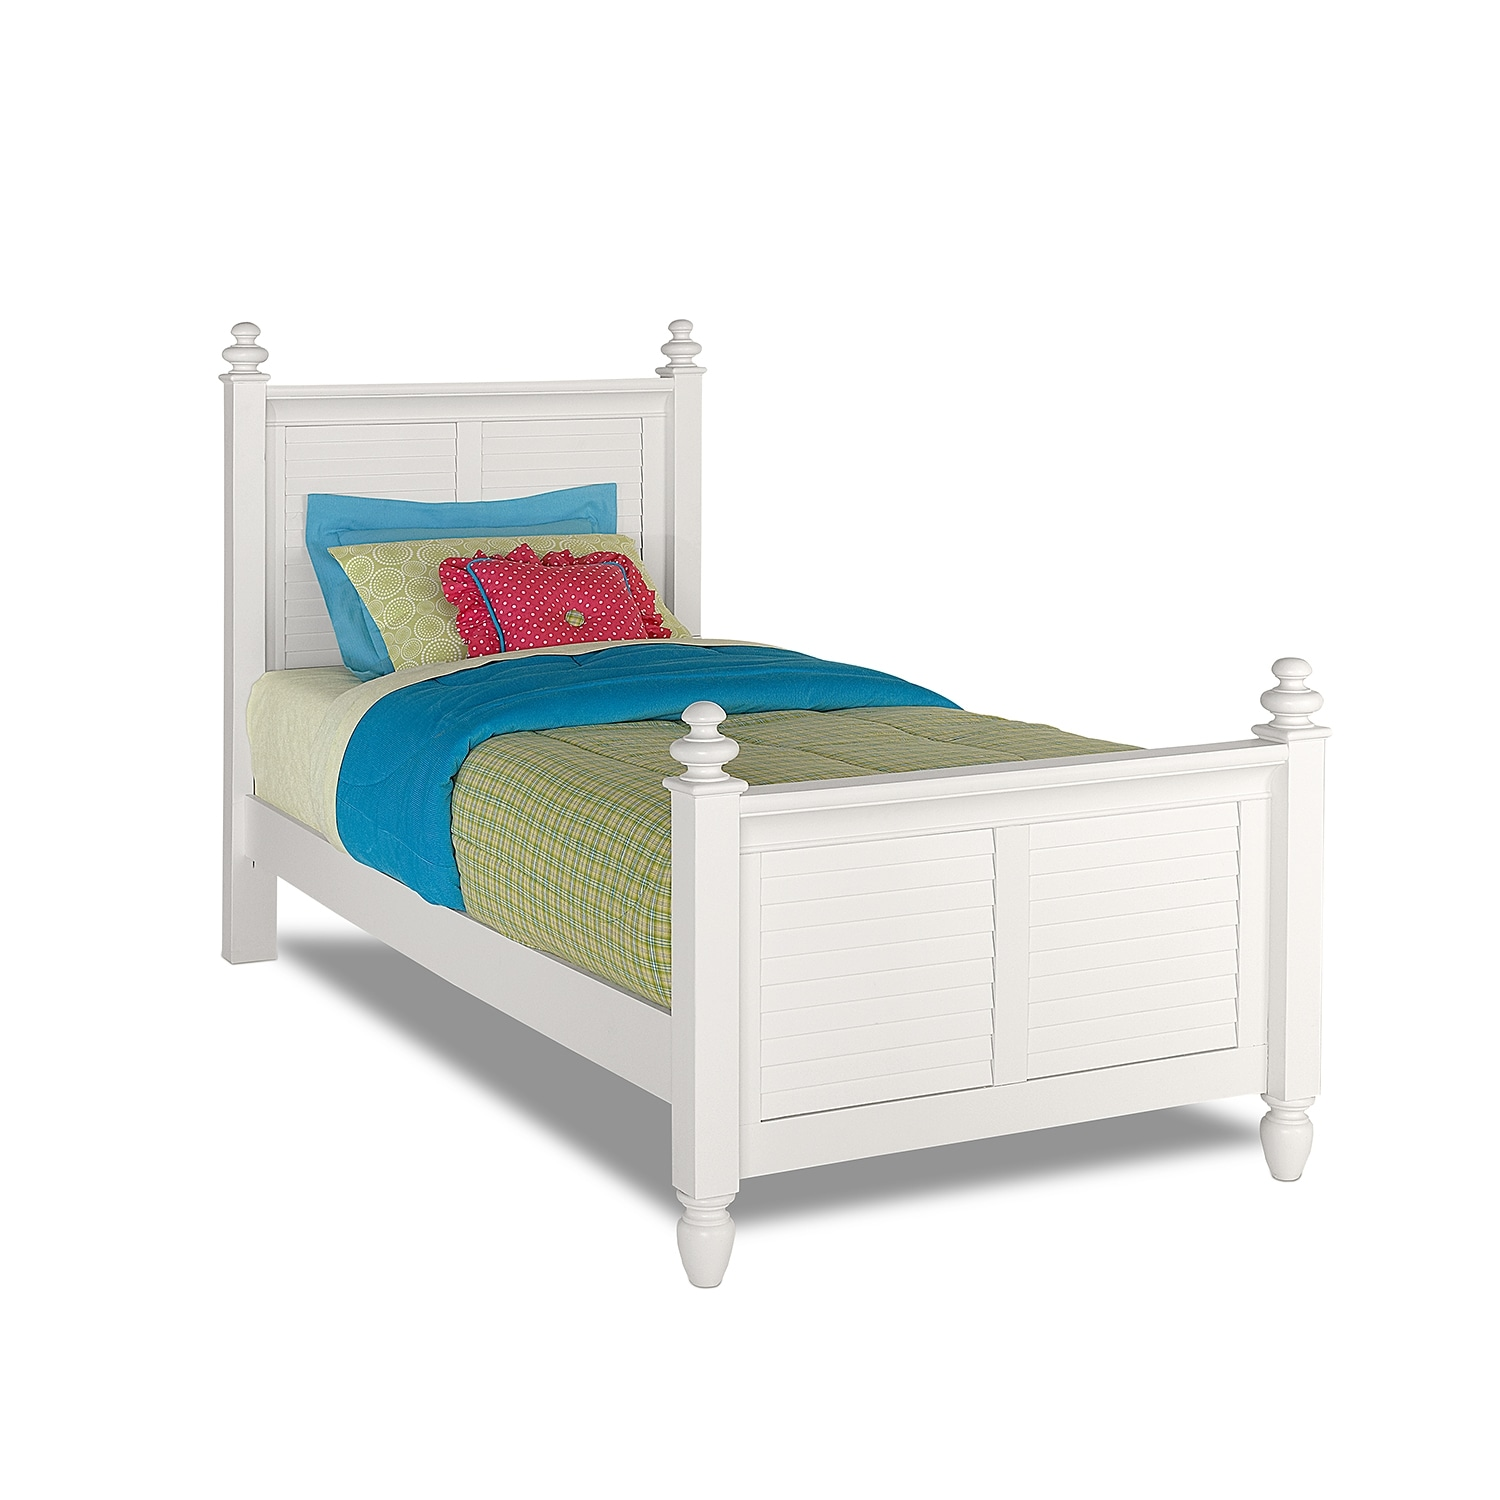 Seaside White Full Bed